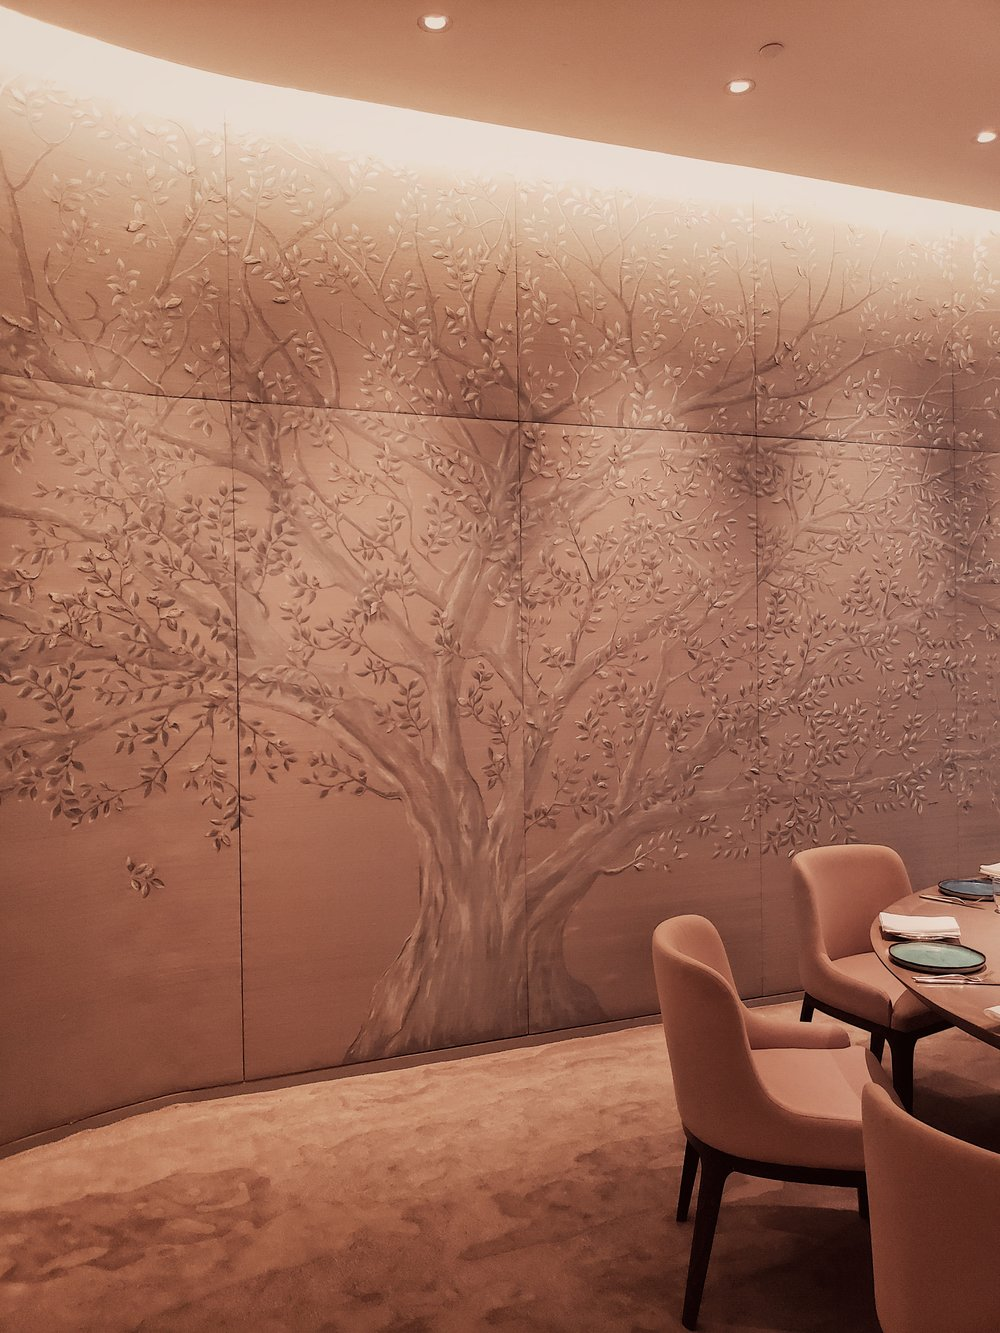 A closer look at the art within the wallpaper.